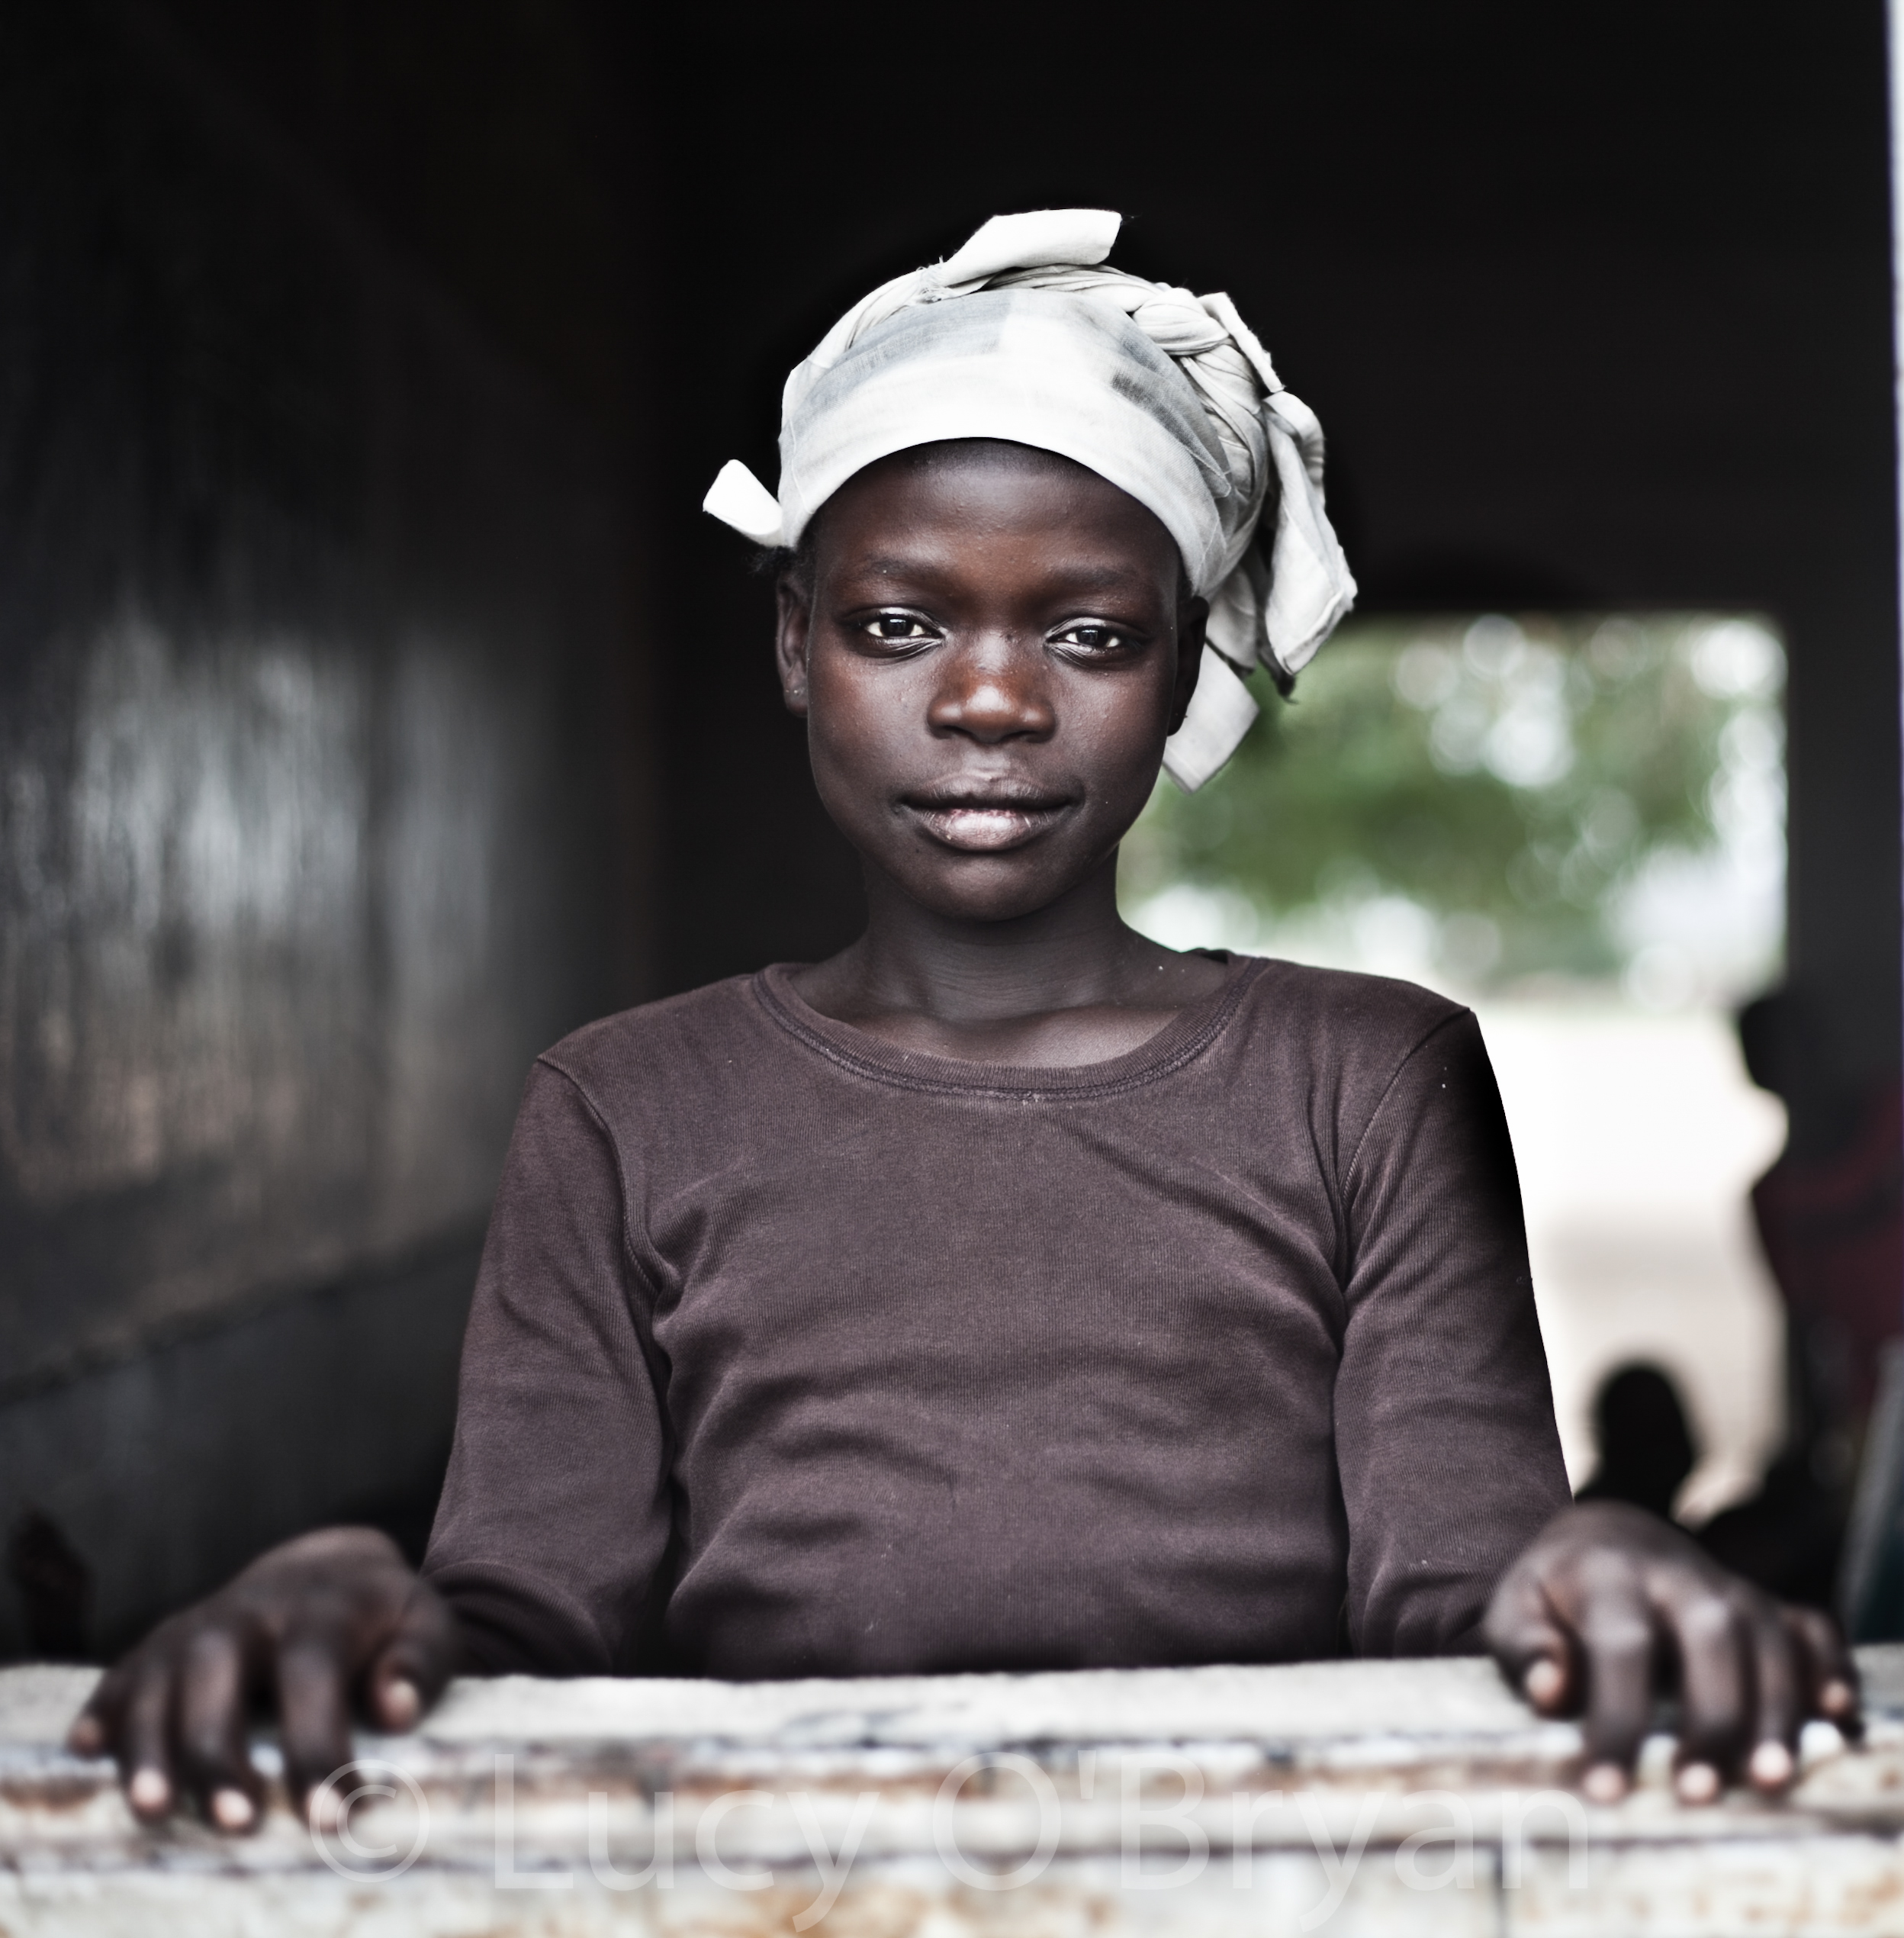 Girl in Window, Cameroon